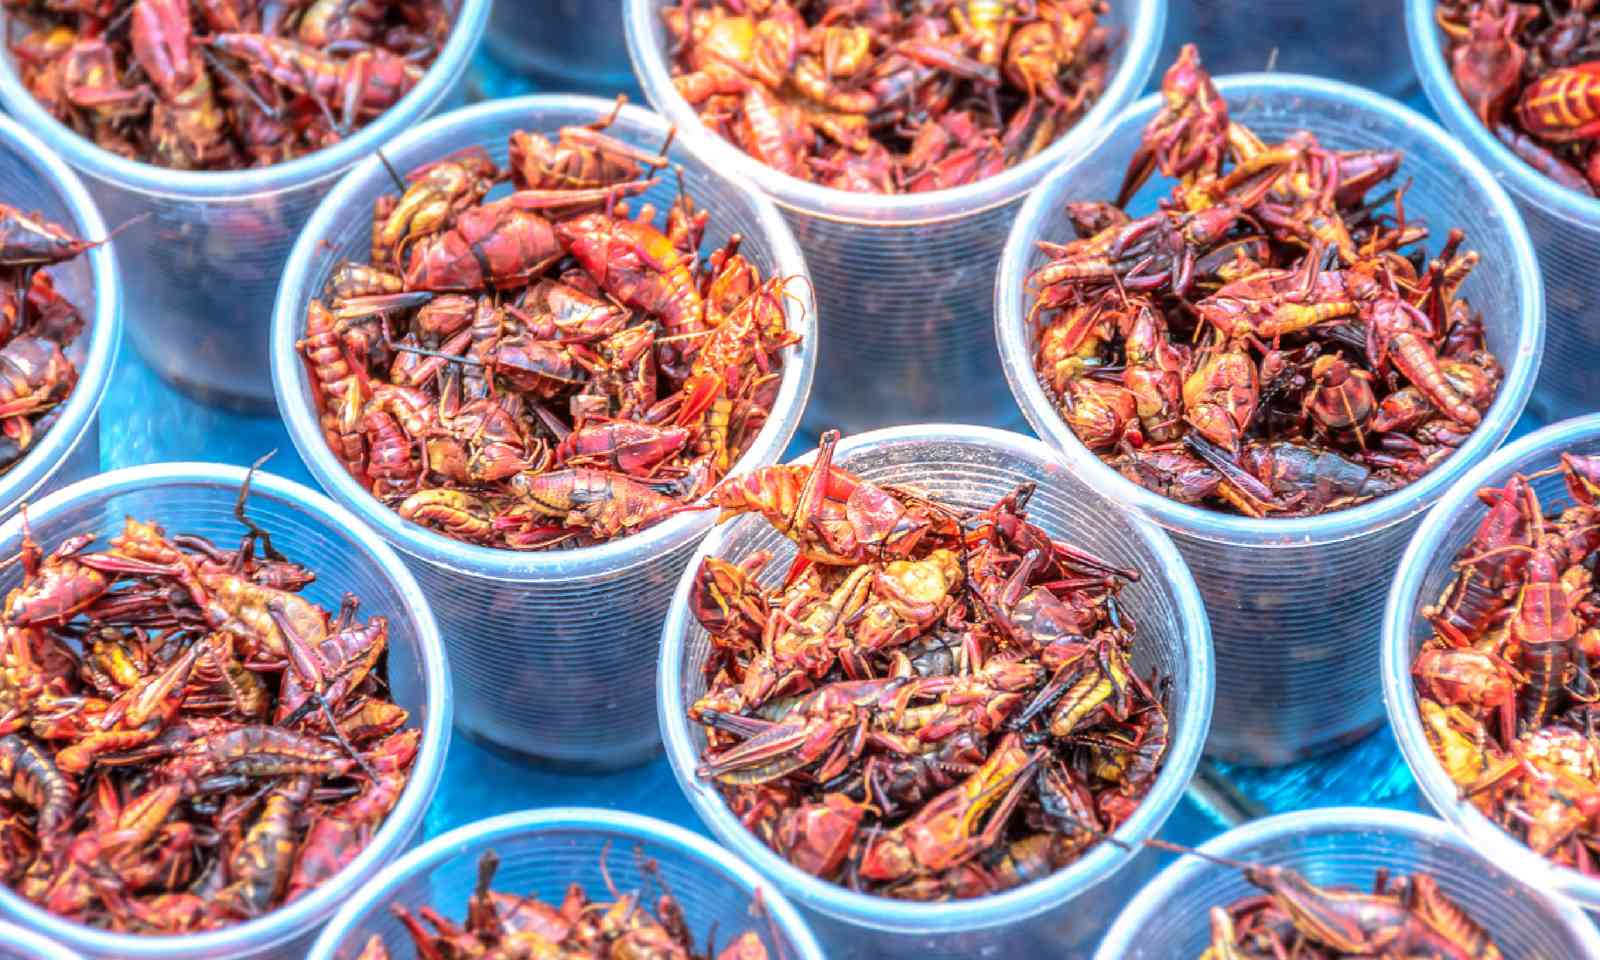 Grasshoppers in Mexico (Shutterstock)